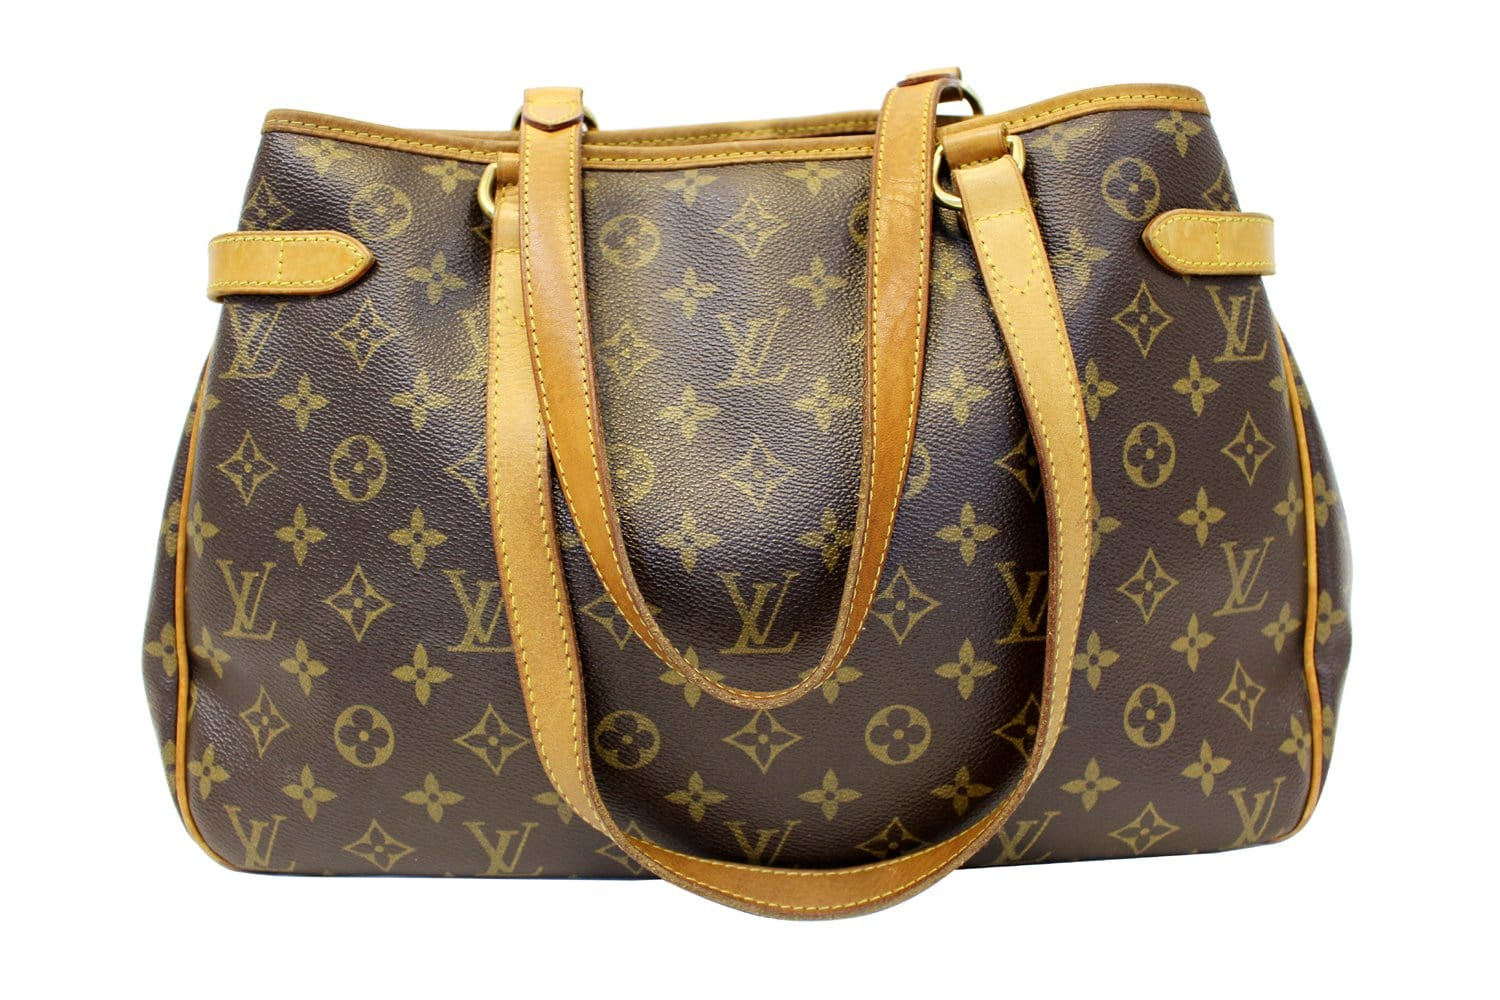 aabb7da6161a LOUIS VUITTON Monogram Canvas Batignolles Horizontal Shoulder ...